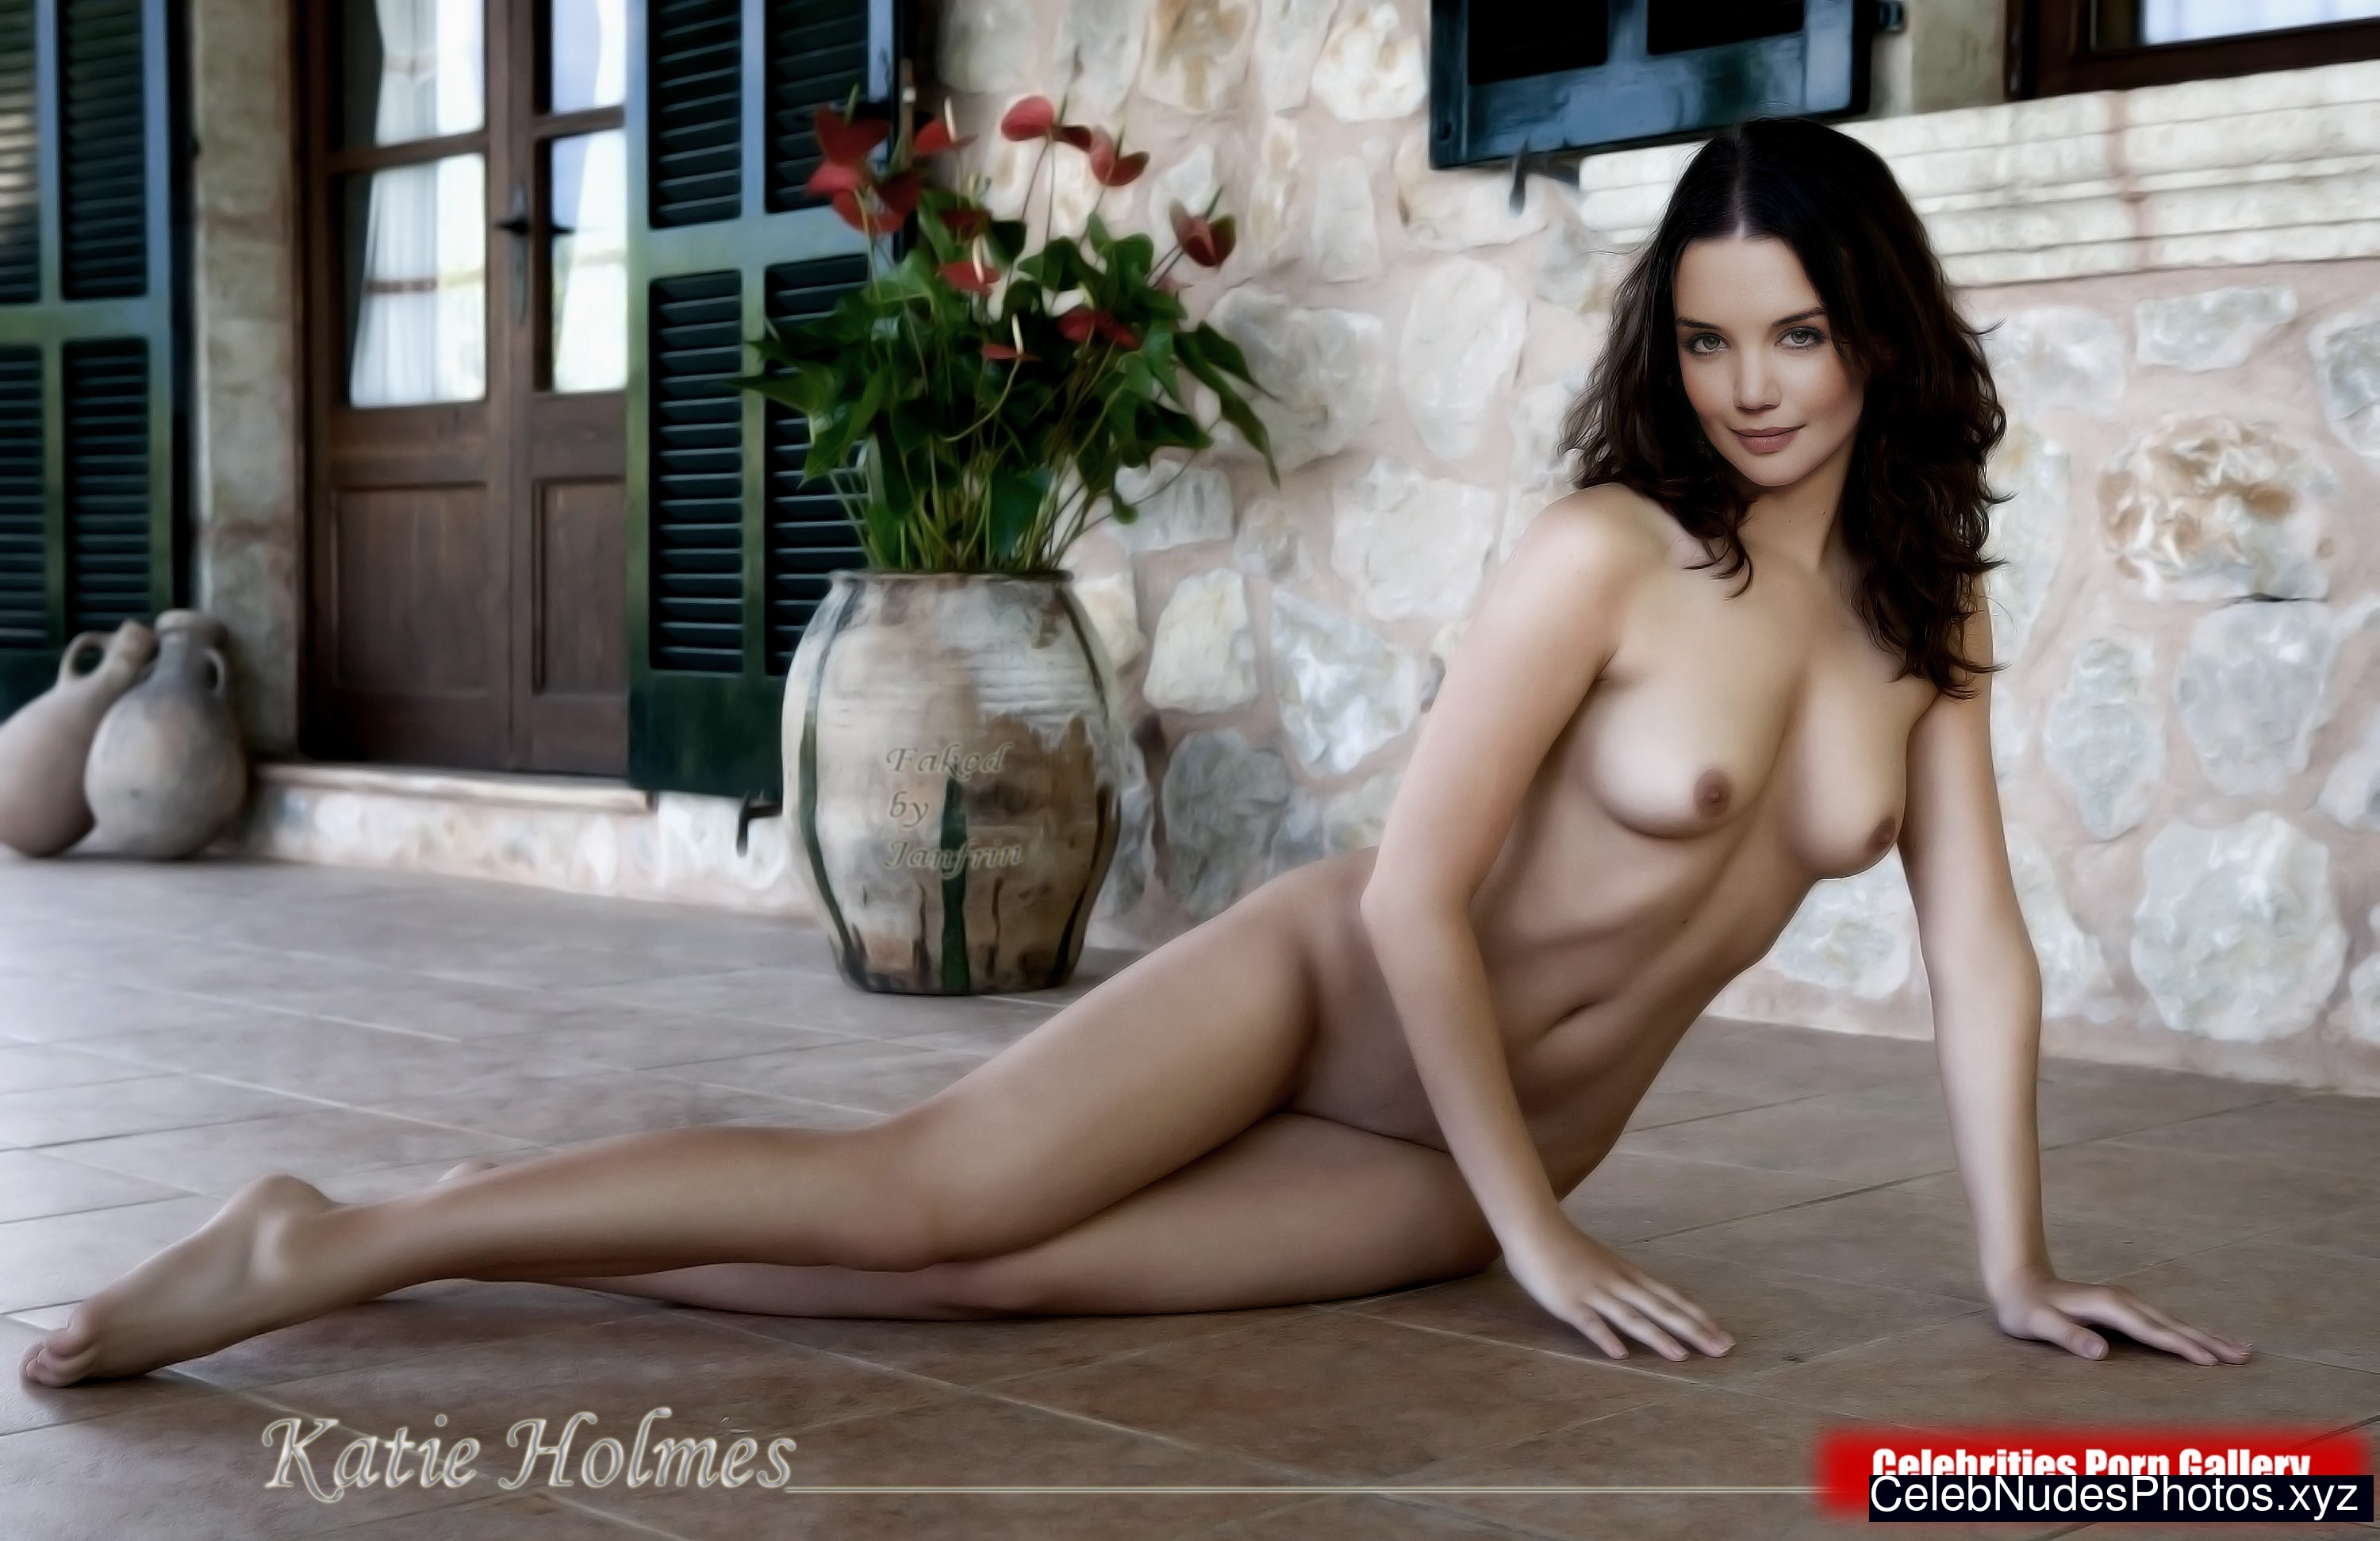 Chase hunter nude photos